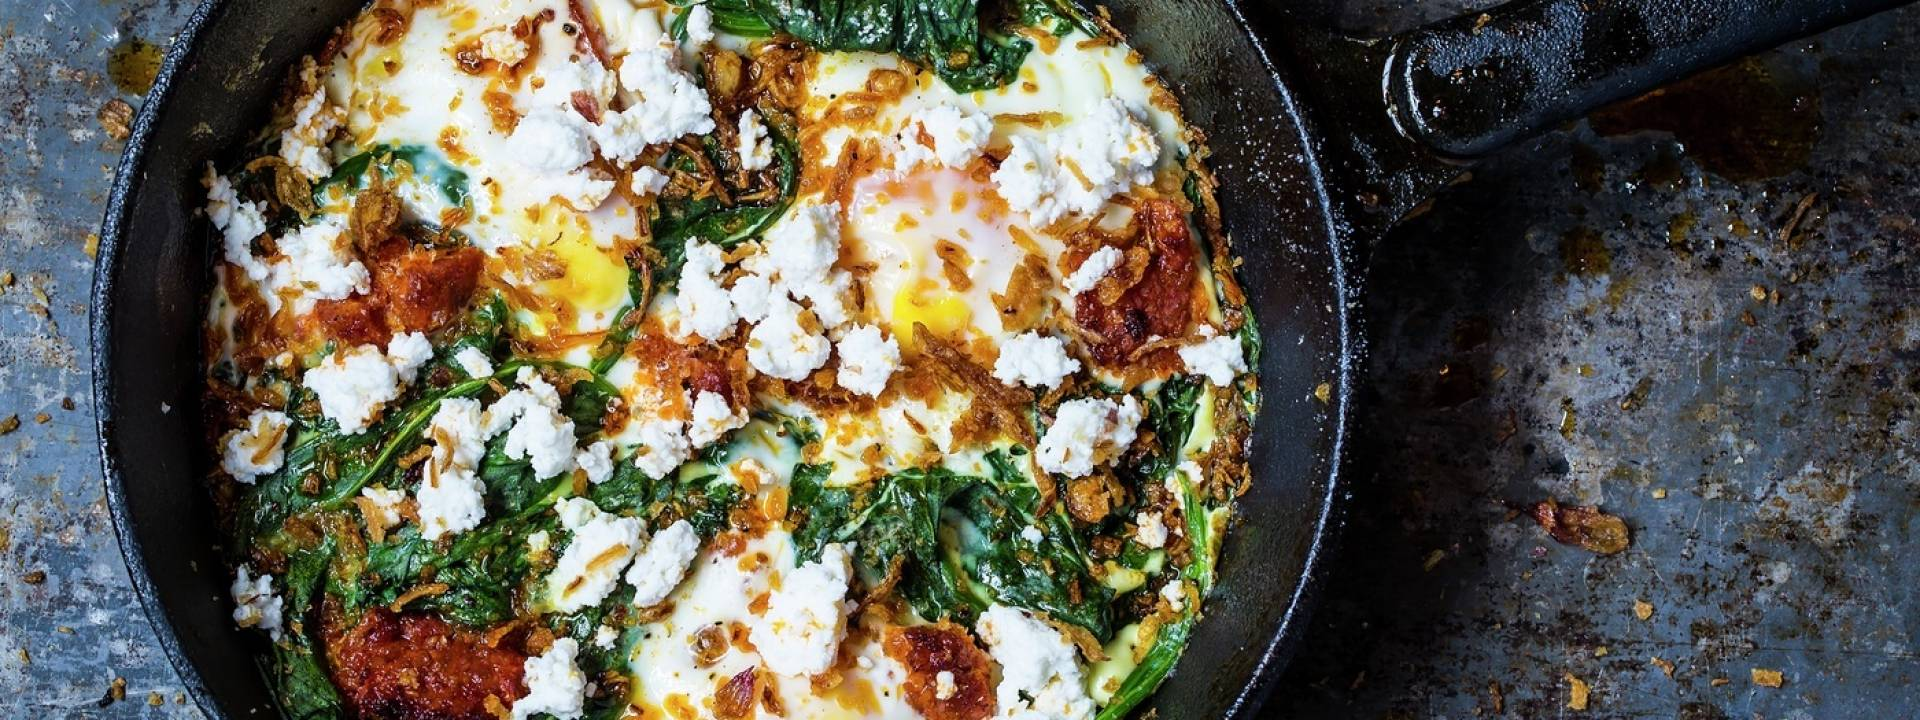 vb698322 Baked eggs spicy chorizo spinach crispy onions ricotta 1